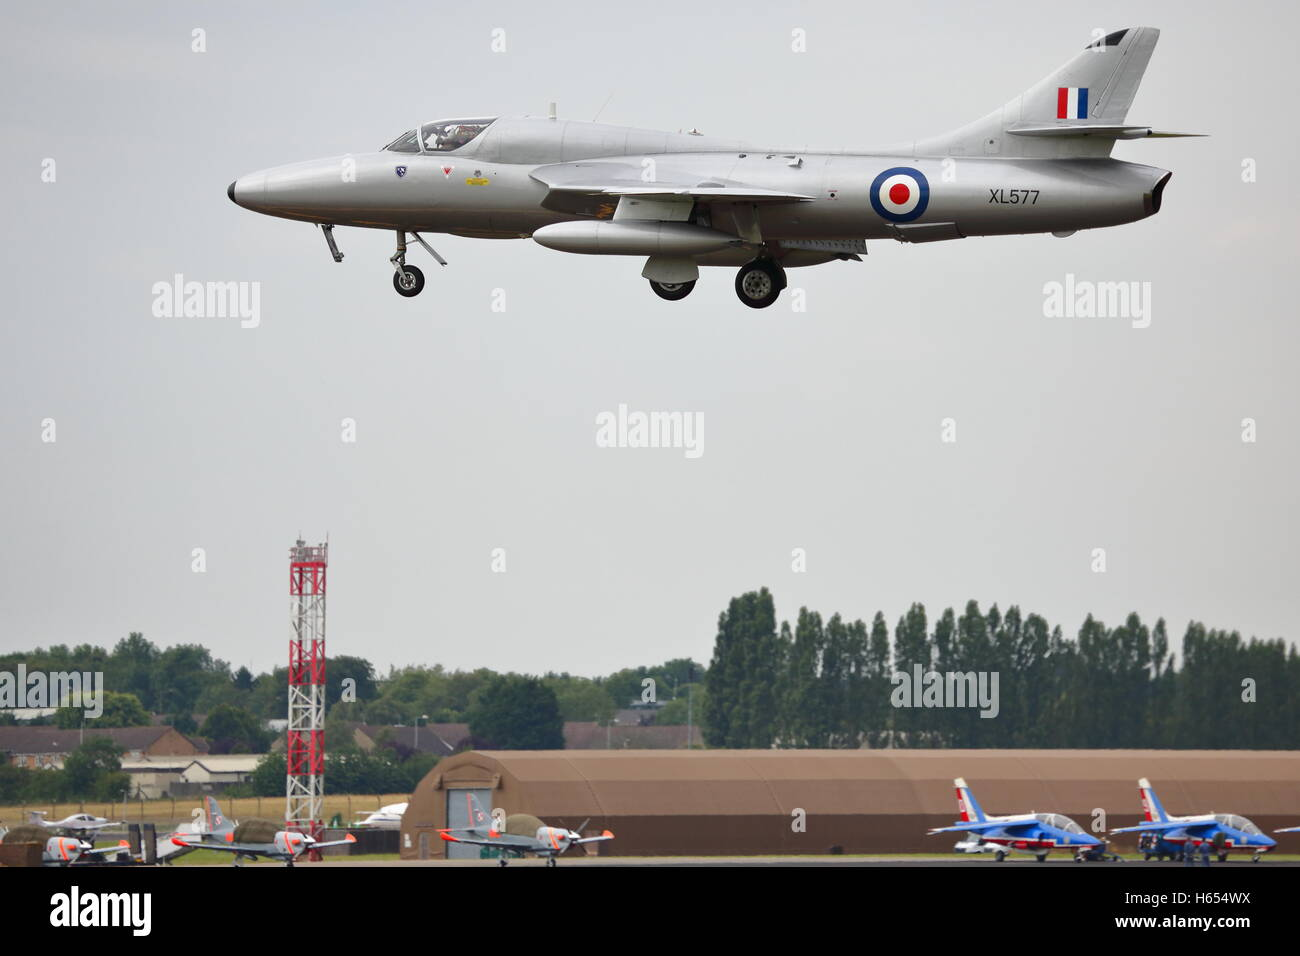 Hawker Hunter T.7 XL577 made an appearance at RIAT 2014 at RAF Fairford, UK - Stock Image